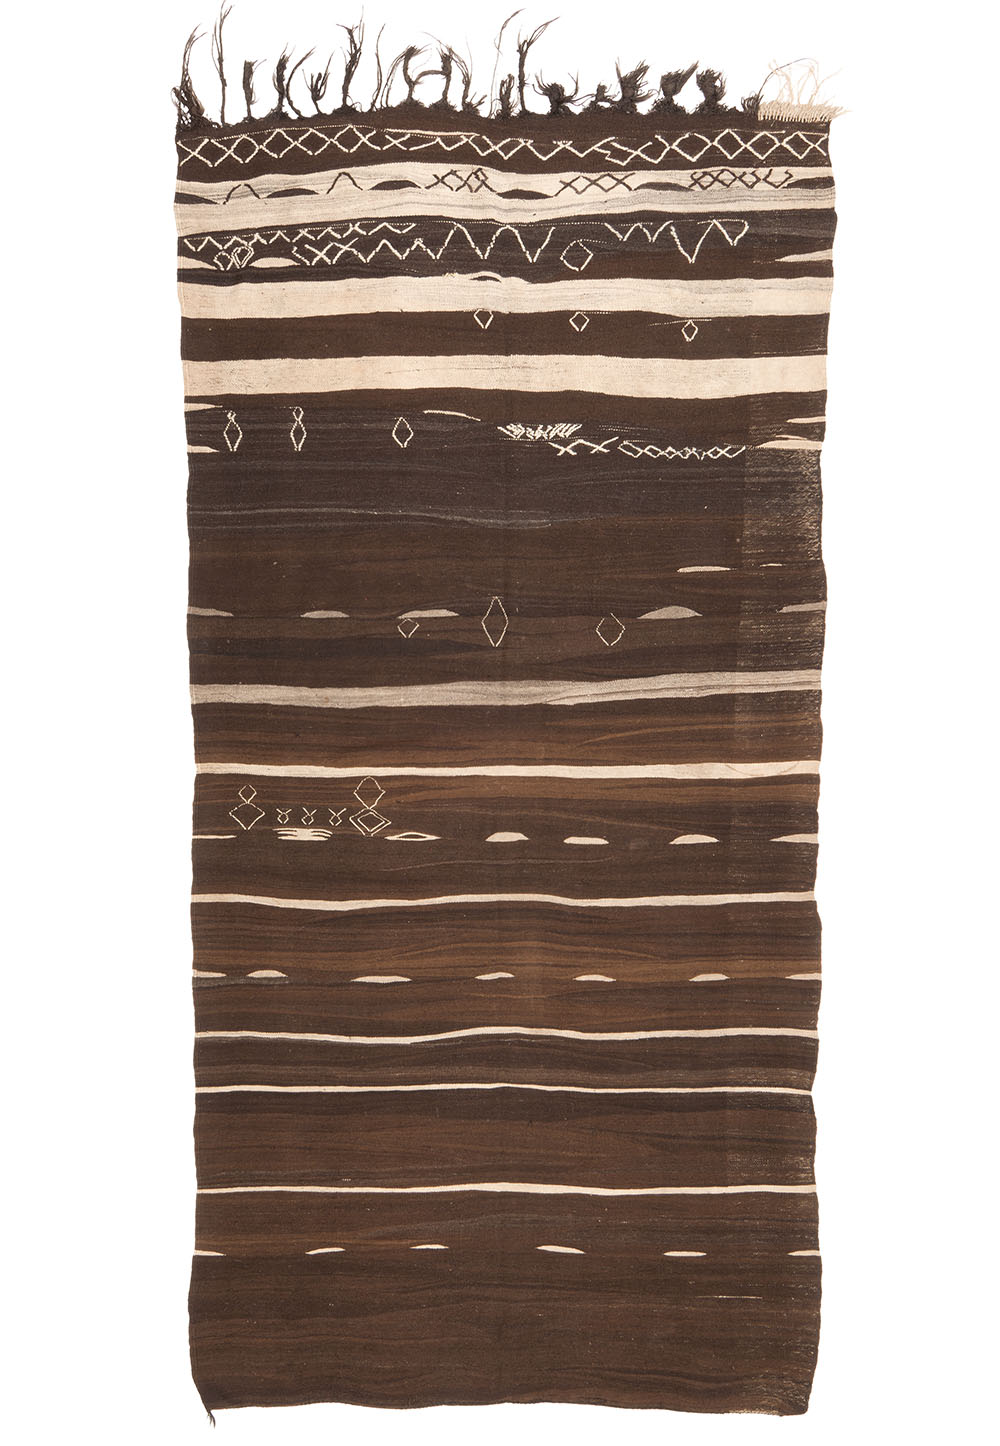 "Berber flatwoven cover (lahmal or sachou), Ourika valley, northcentral High Atlas, Morocco, mid 20th century. 1.73 x 3.56 m (5' 8"" x 11' 8""). Juergen Adam collection"